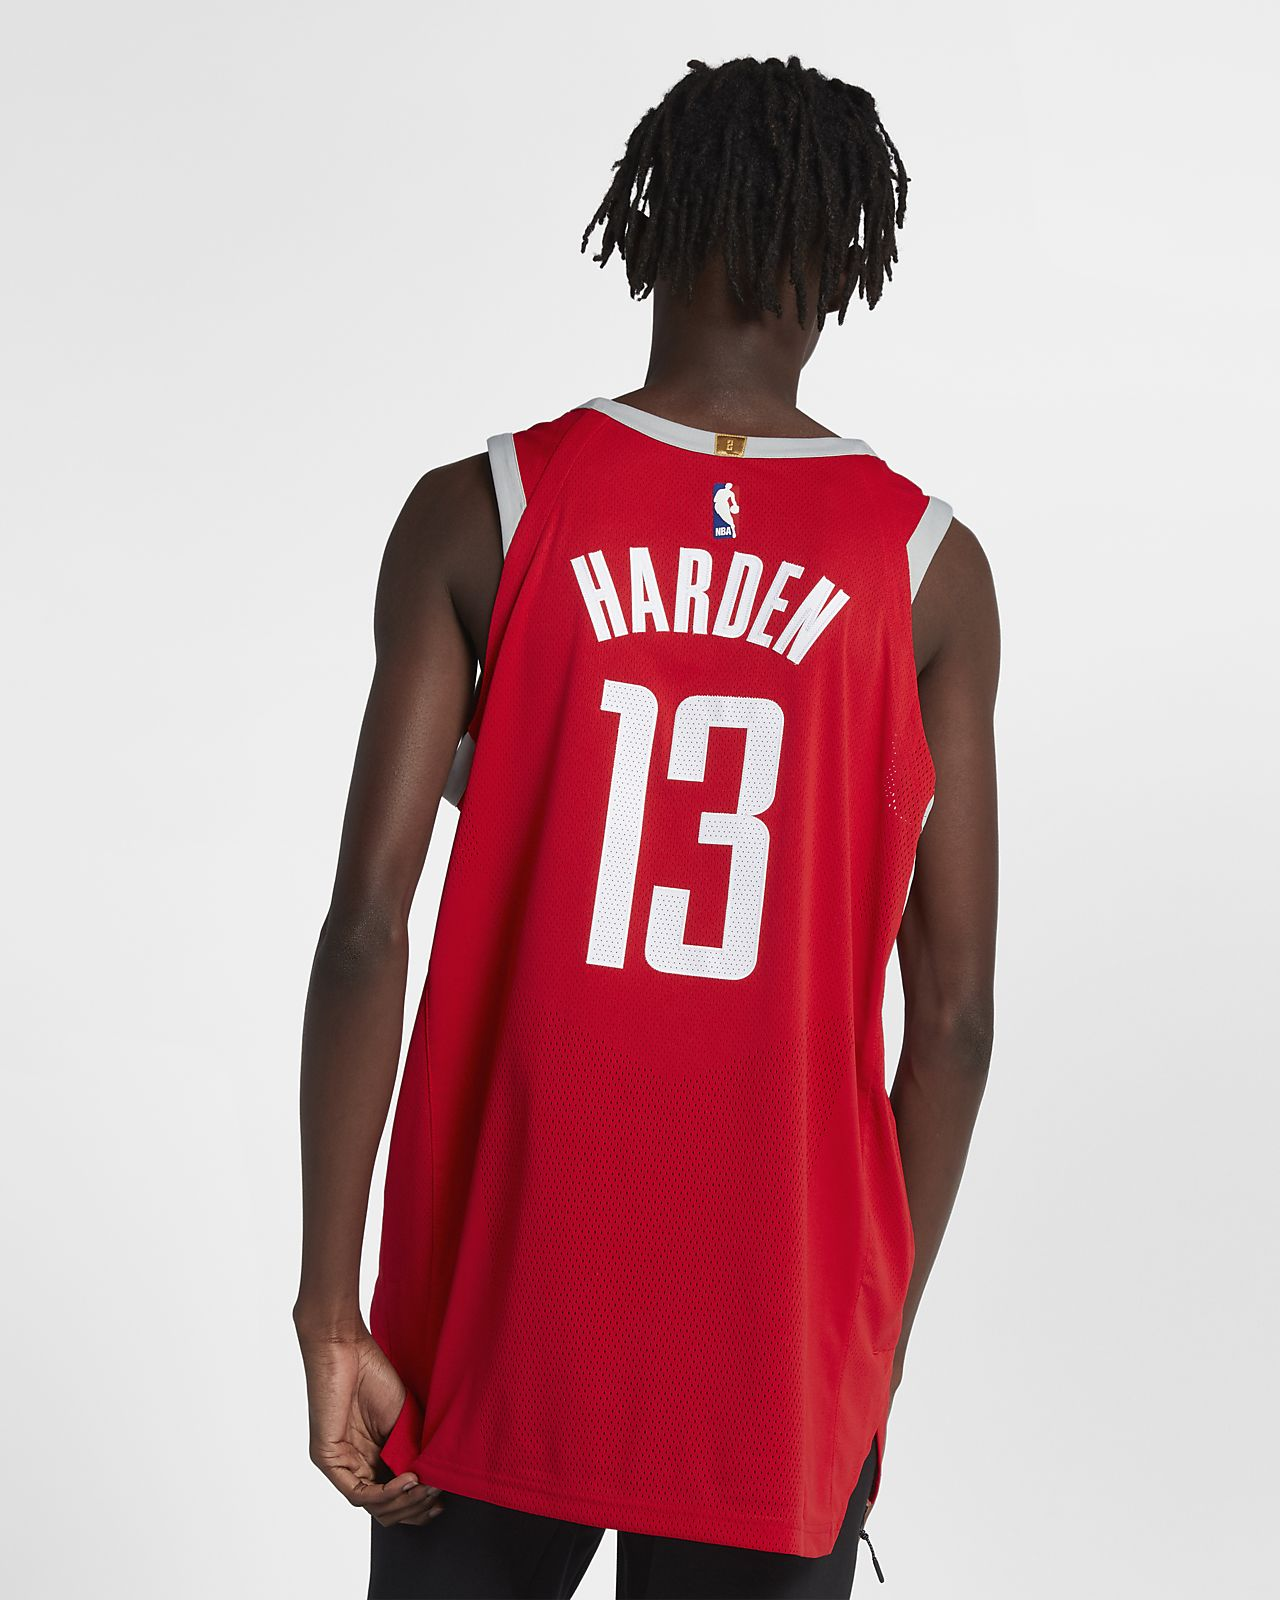 Maillot connecté Nike NBA James Harden Icon Edition Authentic (Houston Rockets) pour Homme